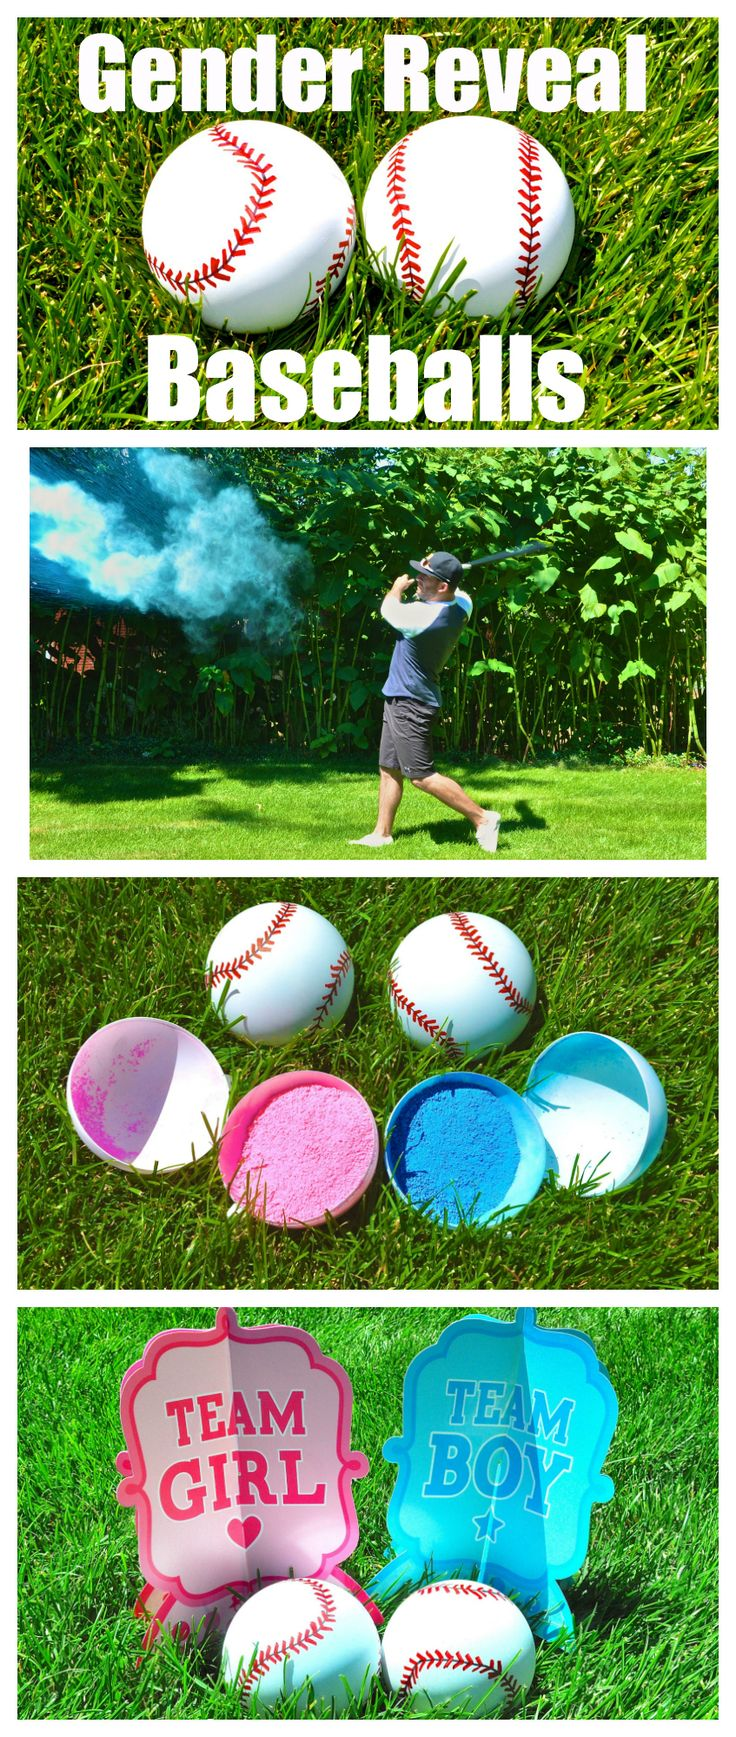 Gender Reveal Baseballs! Such a cute gender reveal idea!!